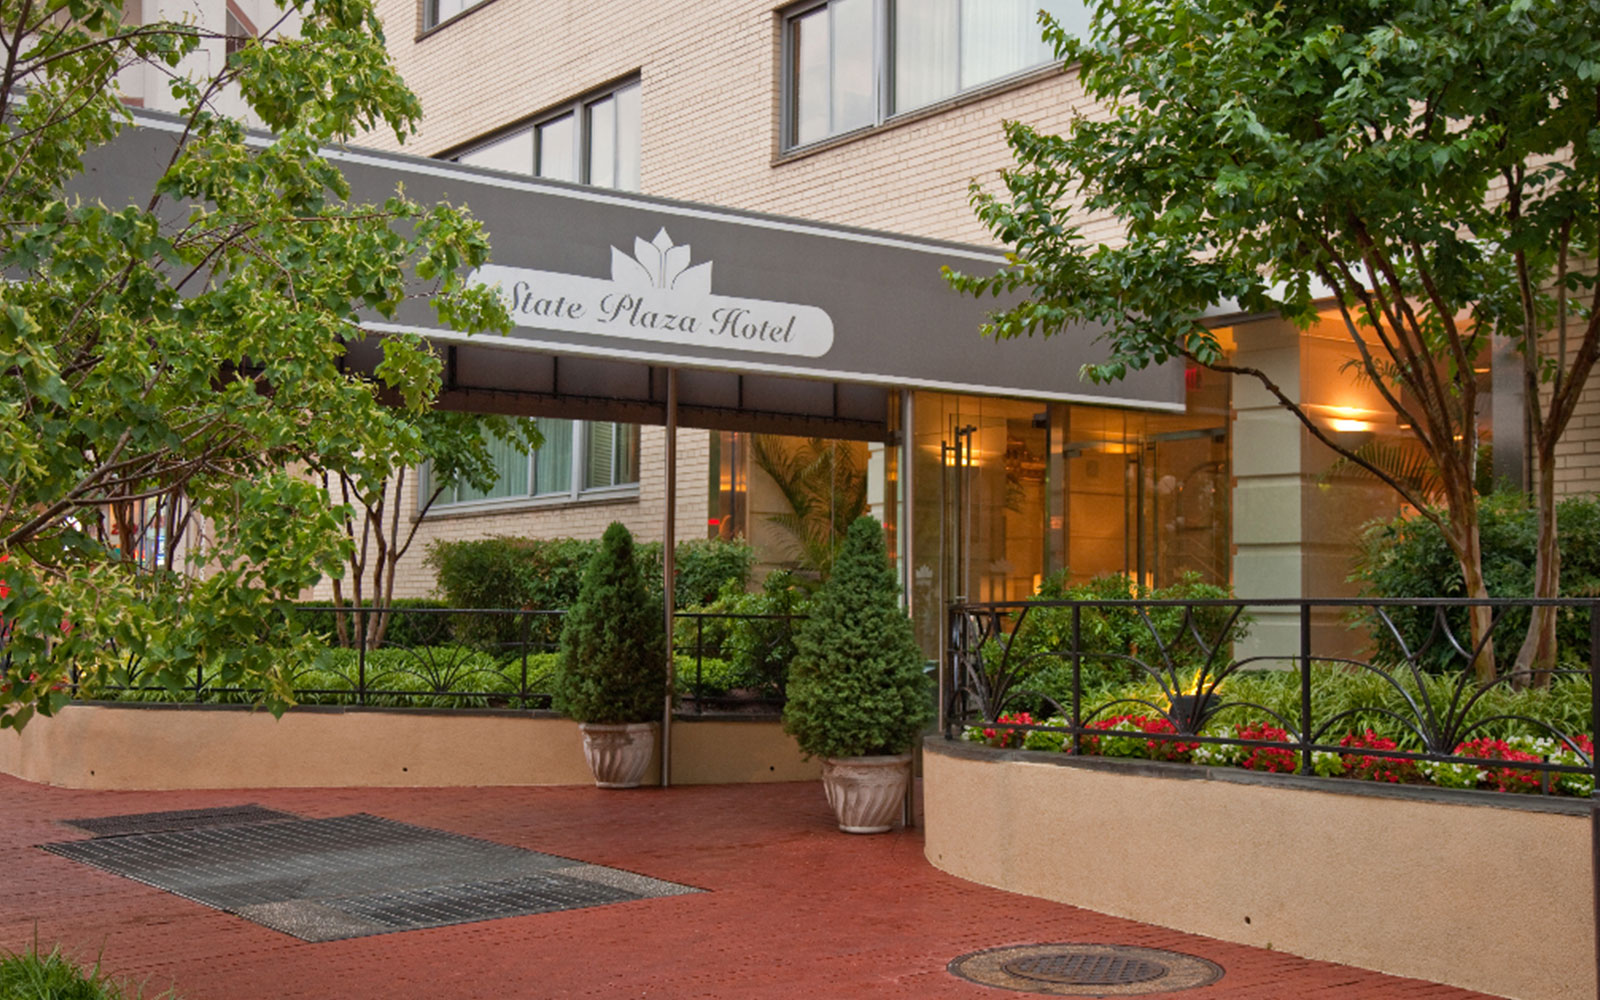 Washington, D.C. Hotel in Foggy Bottom - State Plaza Hotel on